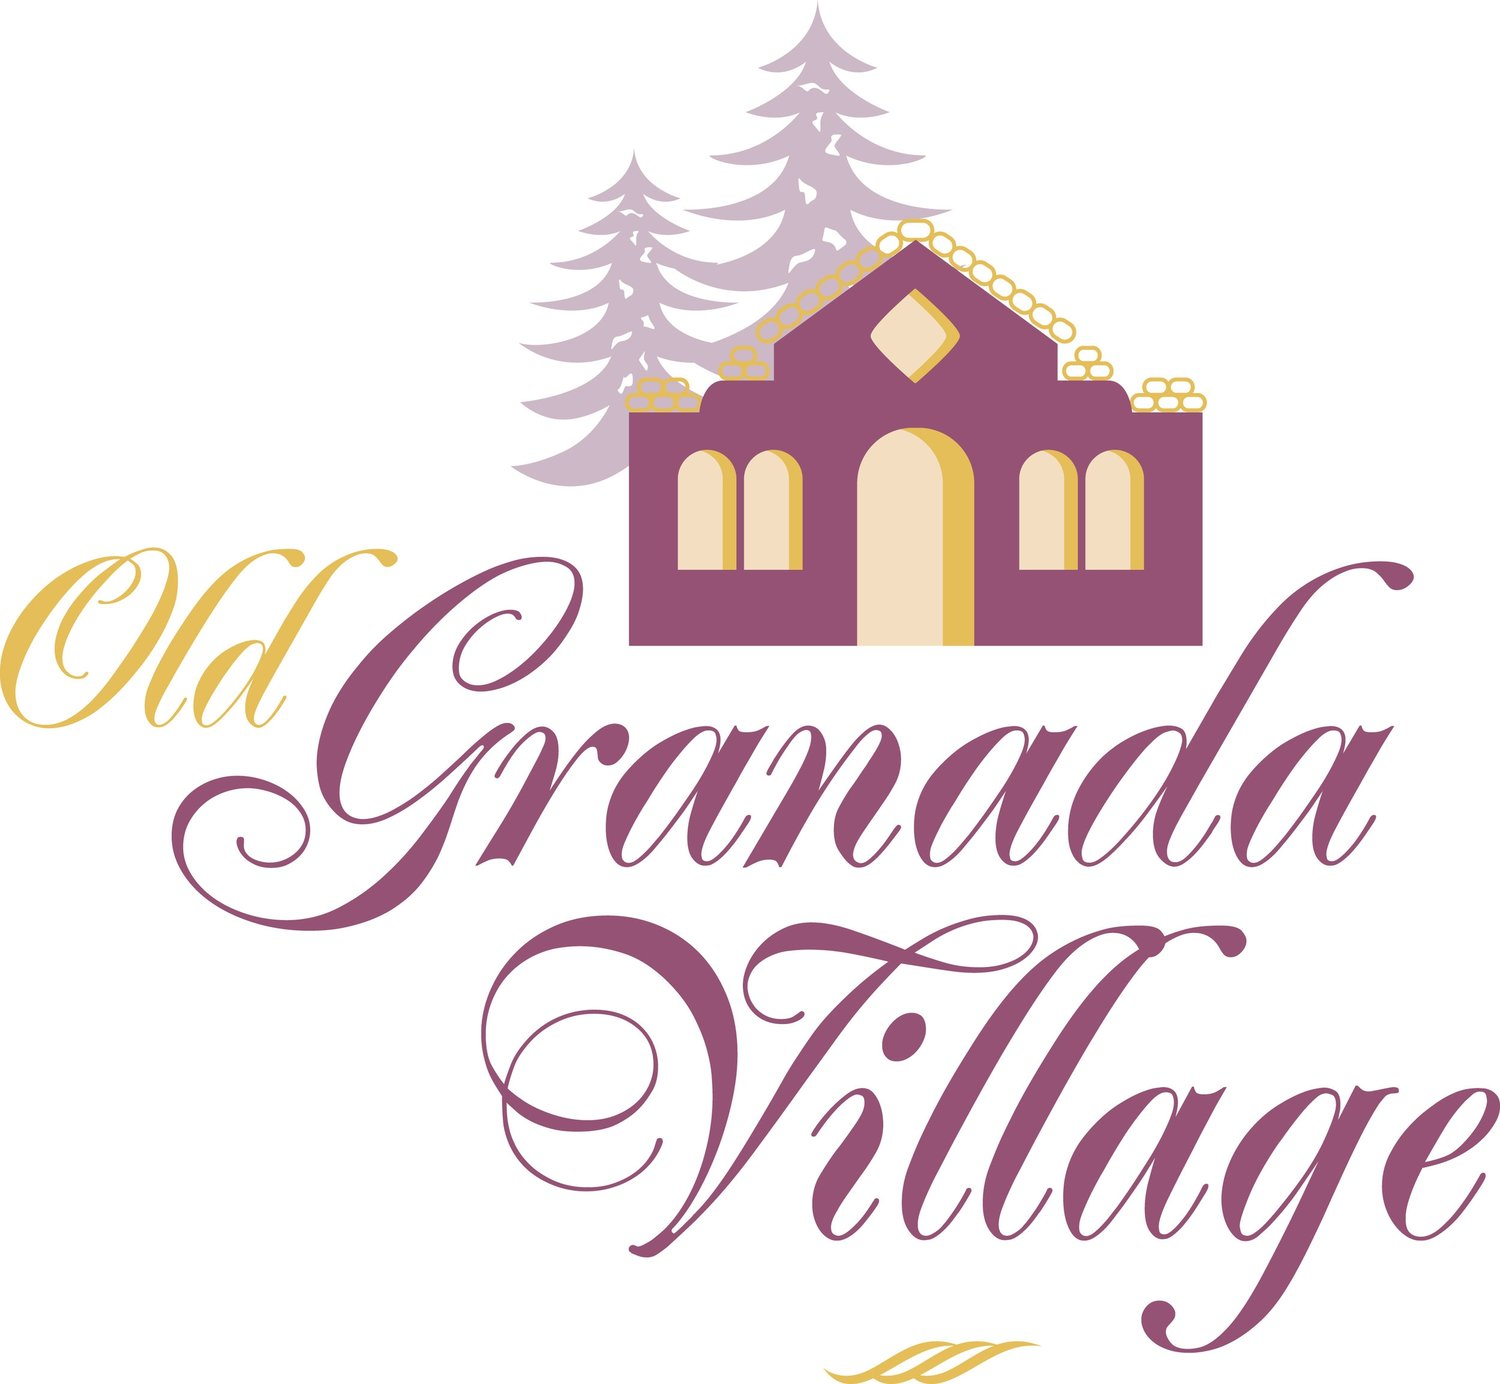 Granada Hills Business Improvement District